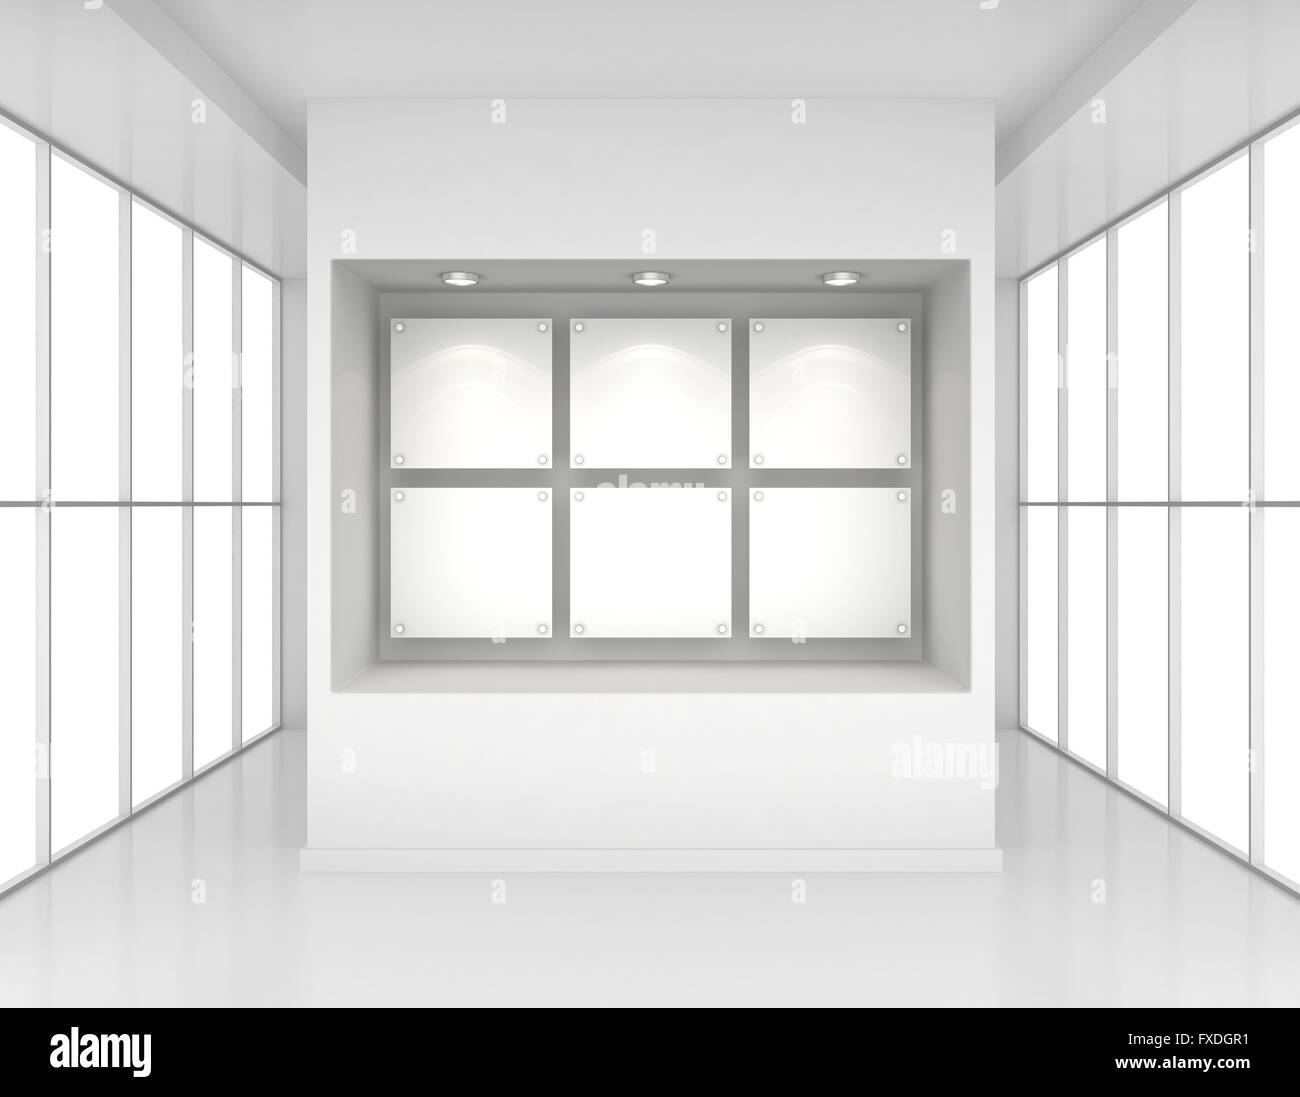 Exhibit Showcases With Blank Paper Poster And Light Bulbs In Interior Room  Large Windows